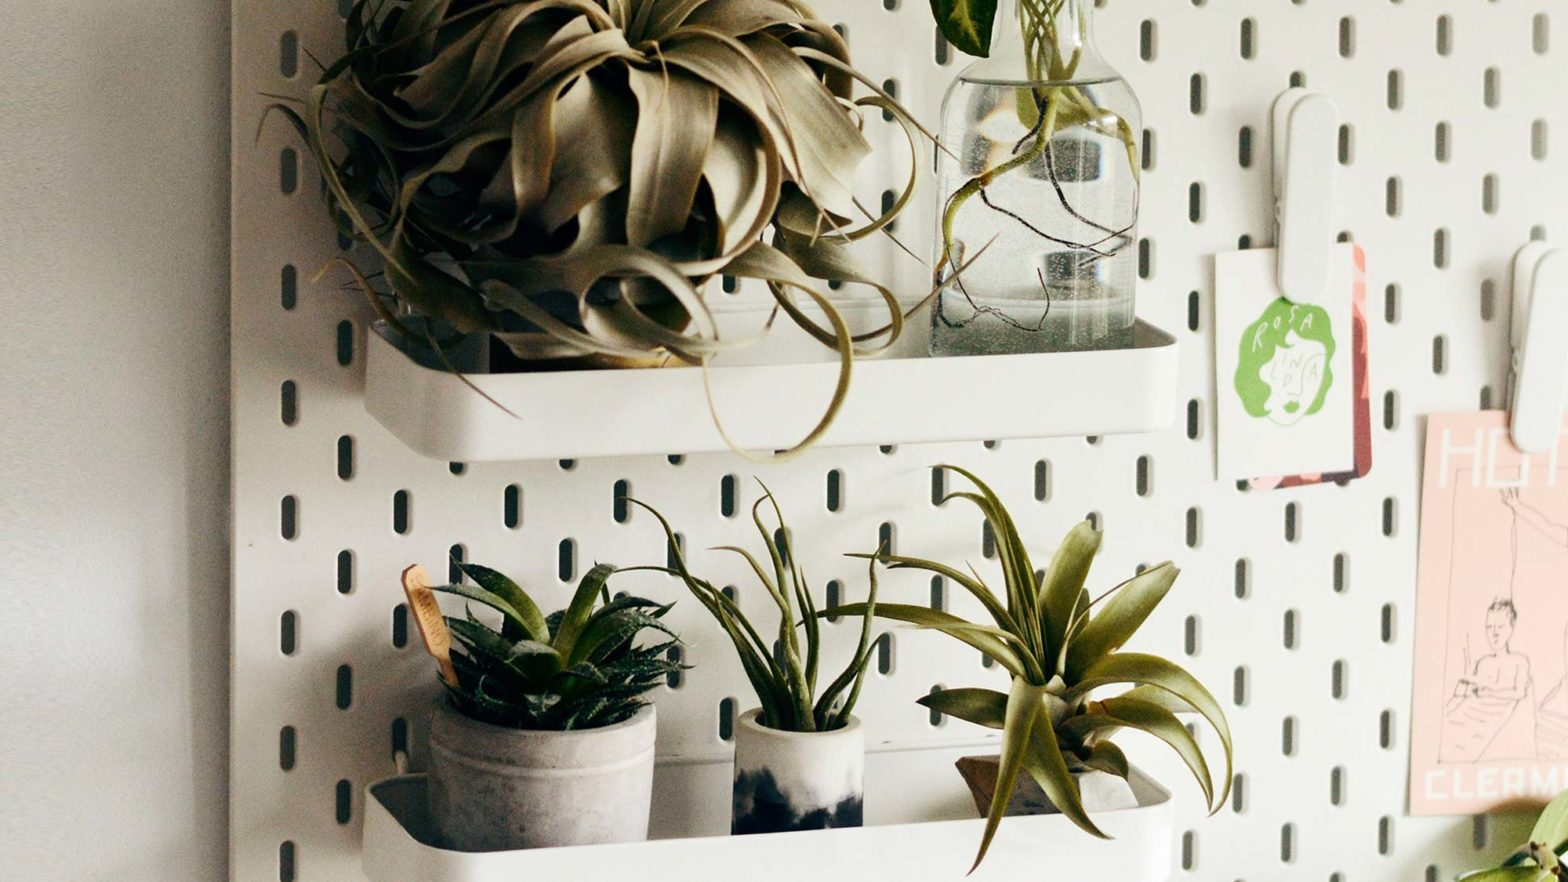 Some Awesome Technology for House Plants